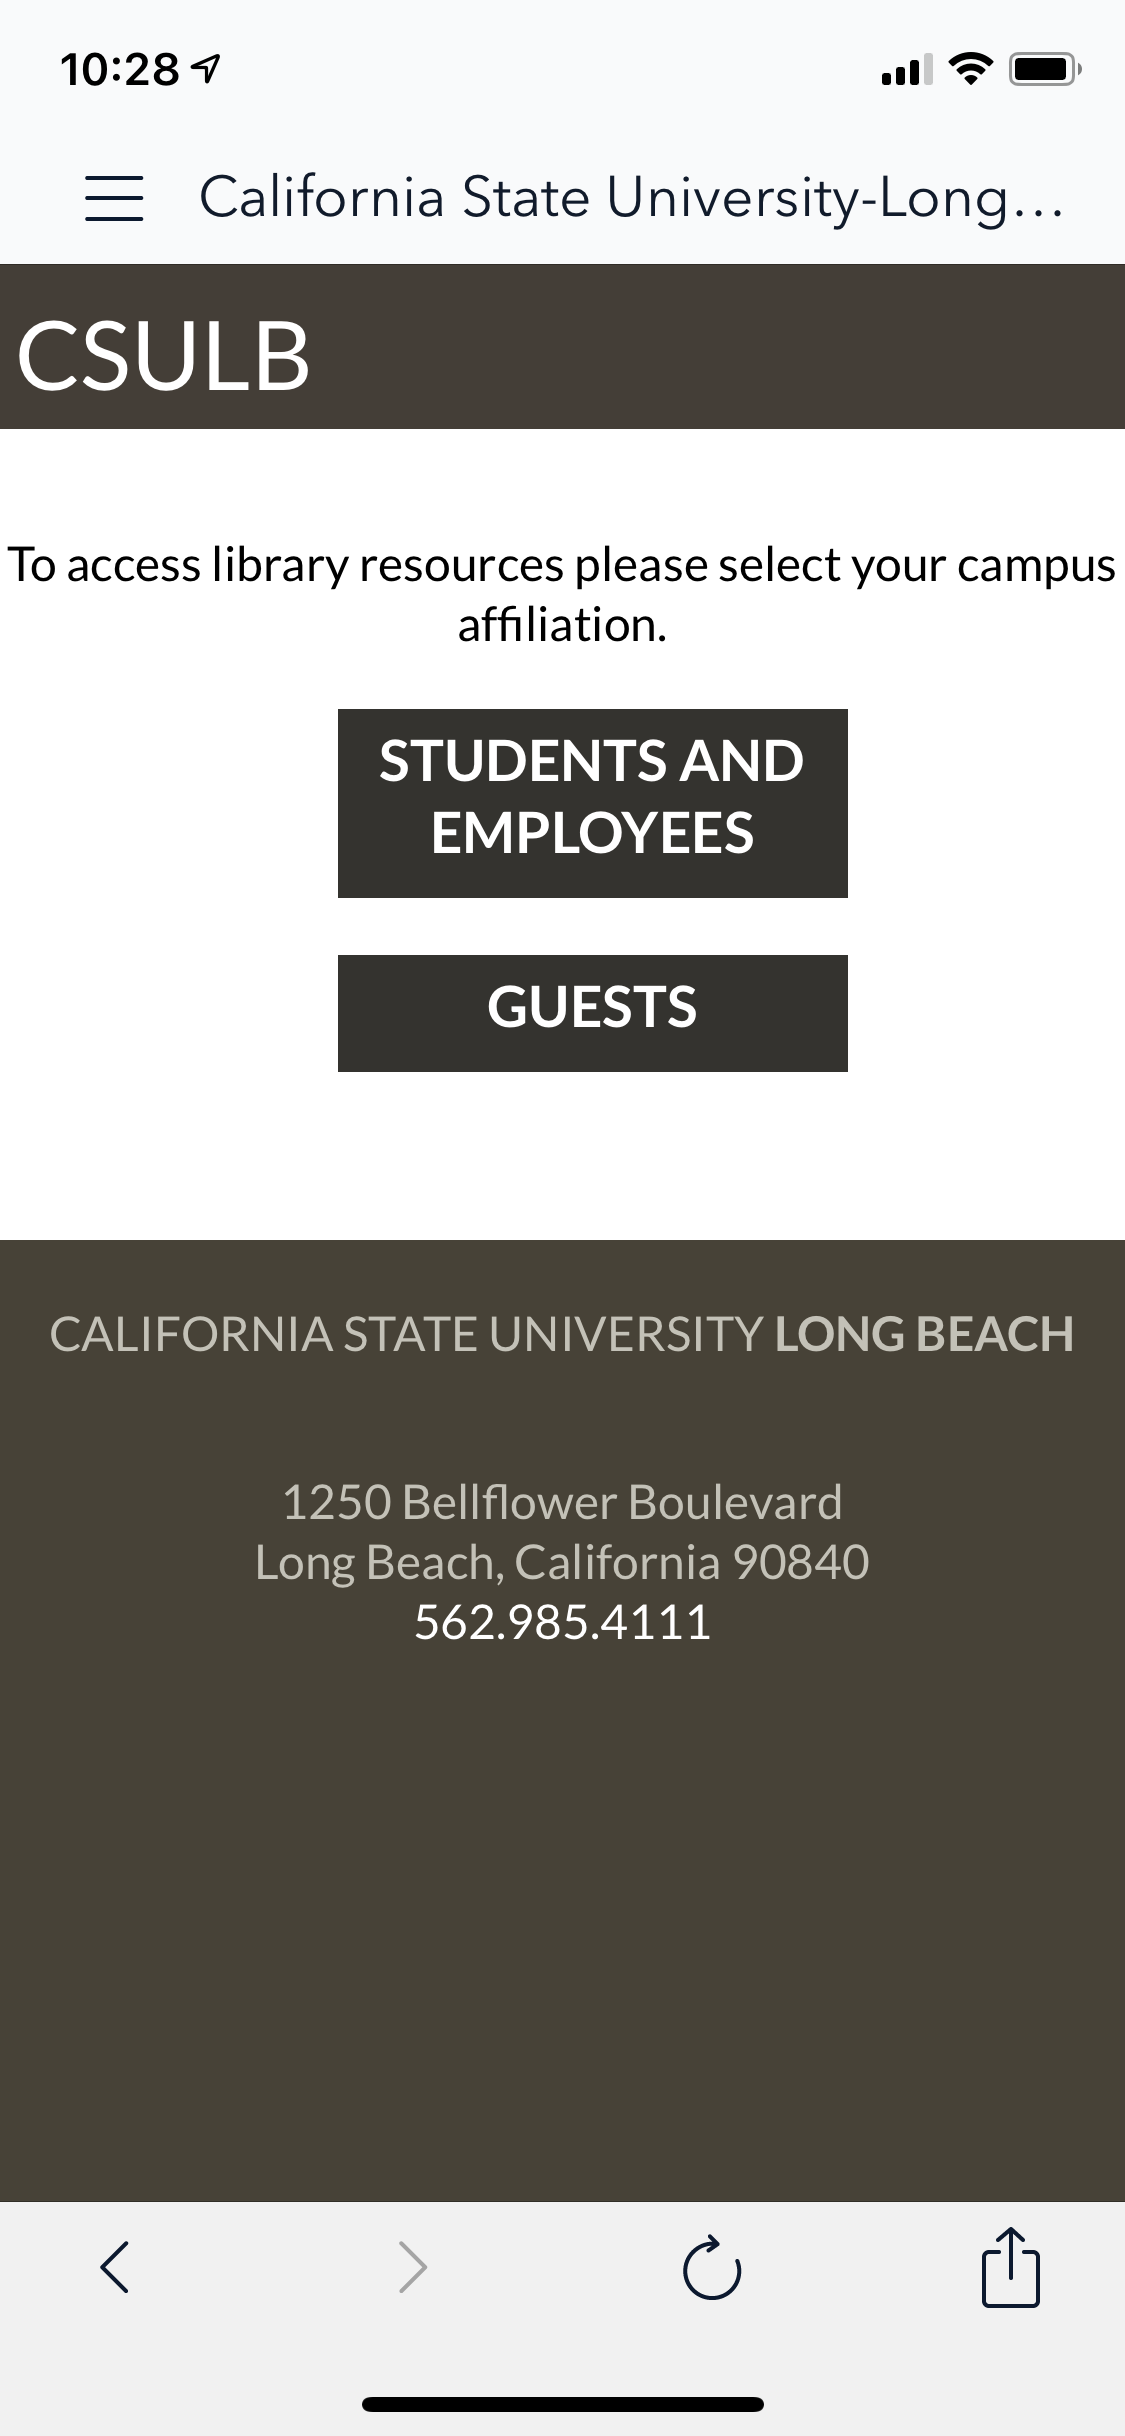 CSULB Single Sign On page in OverDrive